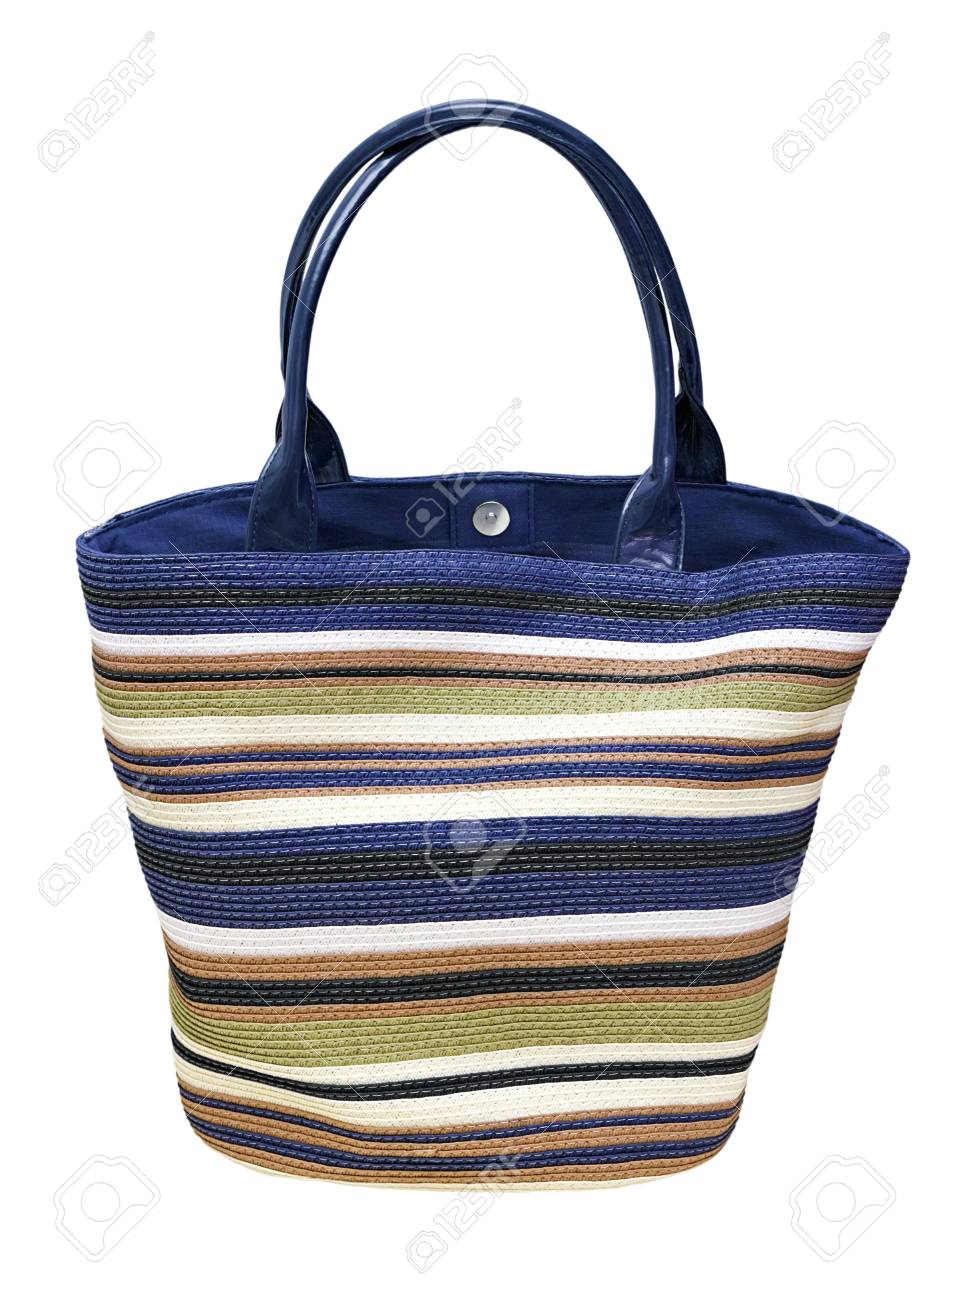 colorful woven shopping bag isolated on white background Stock Photo - 14076568